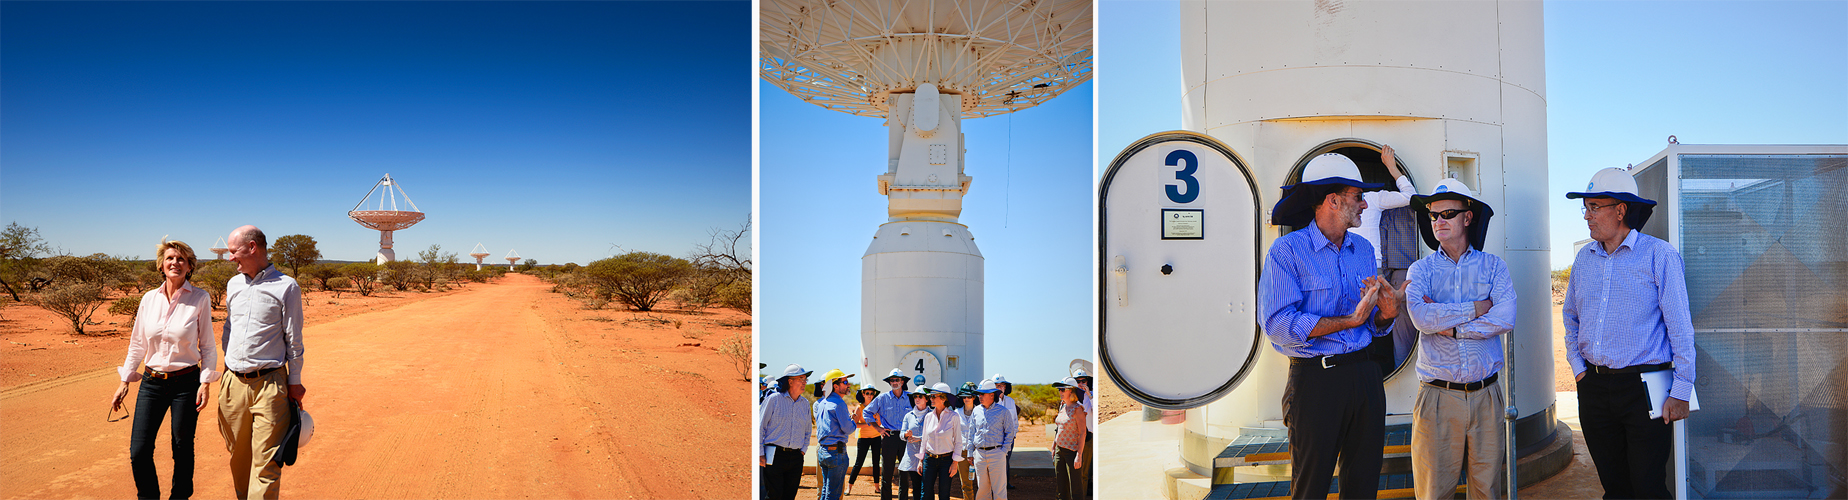 Minister Bishop and Minister Willets in front of our ASKAP antennas; the visitors at the base of an ASKAP antenna; CASS Chief Lewis Ball, Minister Willets and CSIRO Information Sciences Lead Dave Williams.